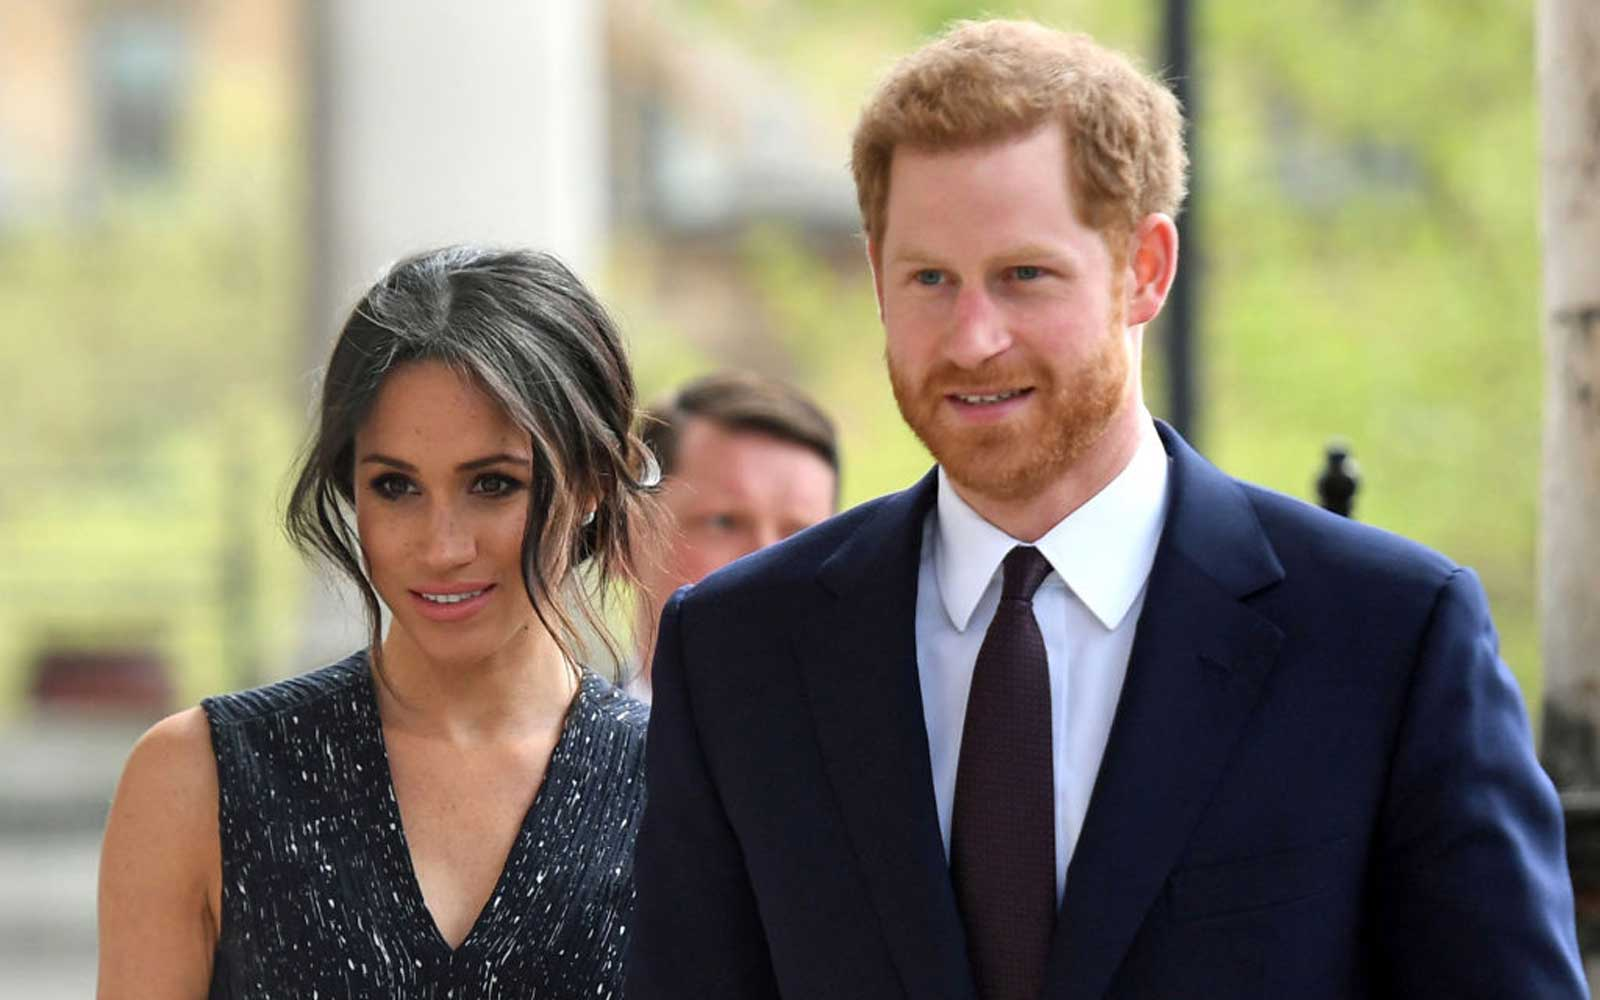 Britain's Prince Harry (R) and his US fiancee Meghan Markle arrive to attend a memorial service at St Martin-in-the-Fields in Trafalgar Square in London